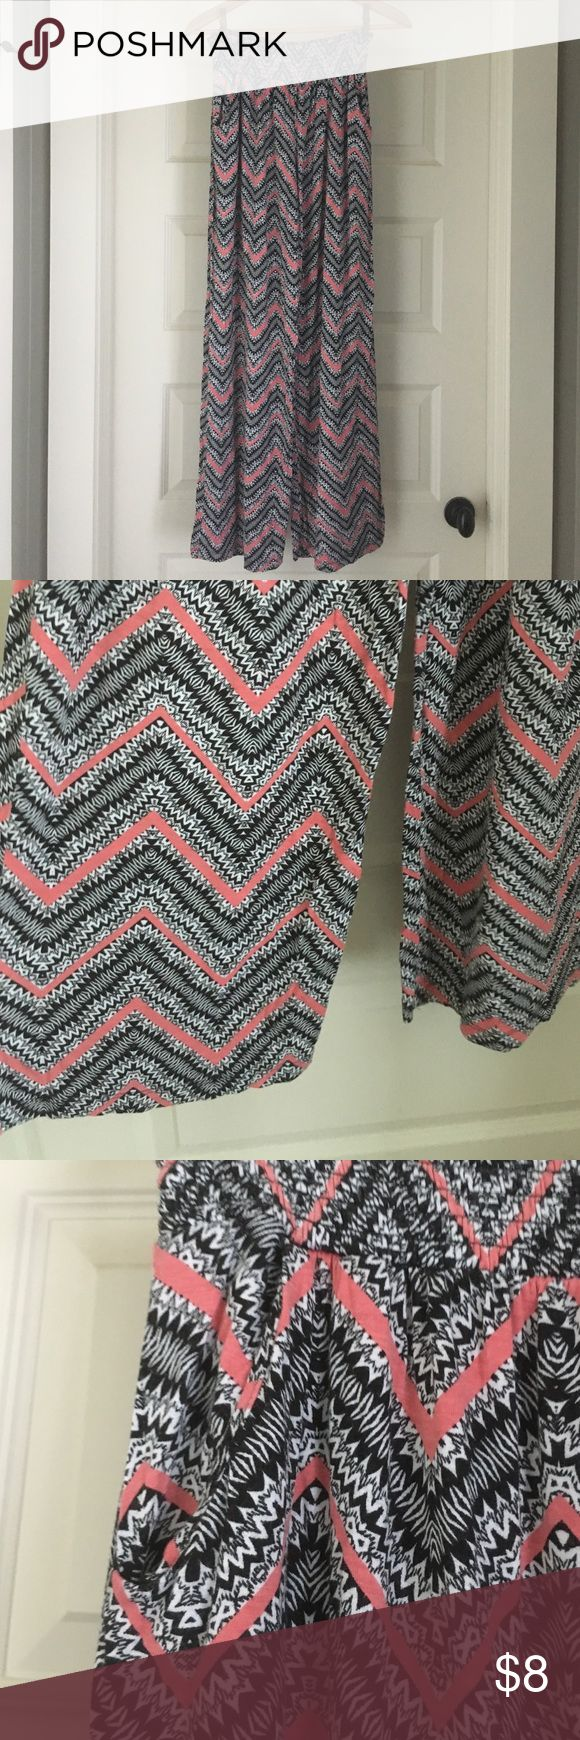 Plazzo Pants Knit Plazzo Pant. Black and White chevron print with a touch of coral. Supper comfy. Mossimo Supply Co Pants